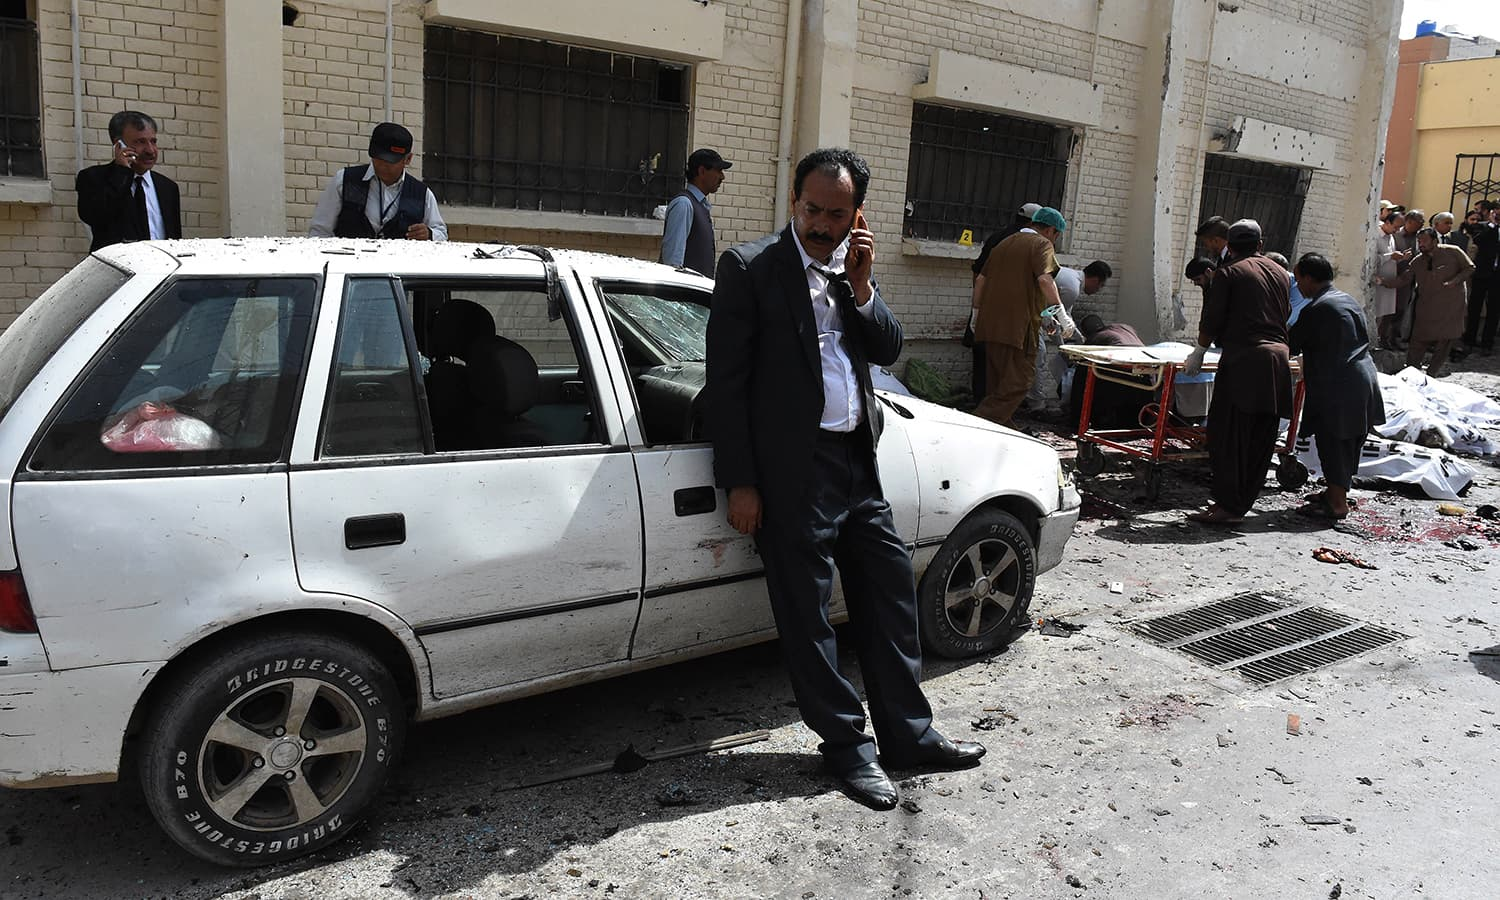 Lawyers talk on mobiles next to bodies of their colleagues after a bomb explosion at a government hospital premises in Quetta on August 8, 2016.—AFP